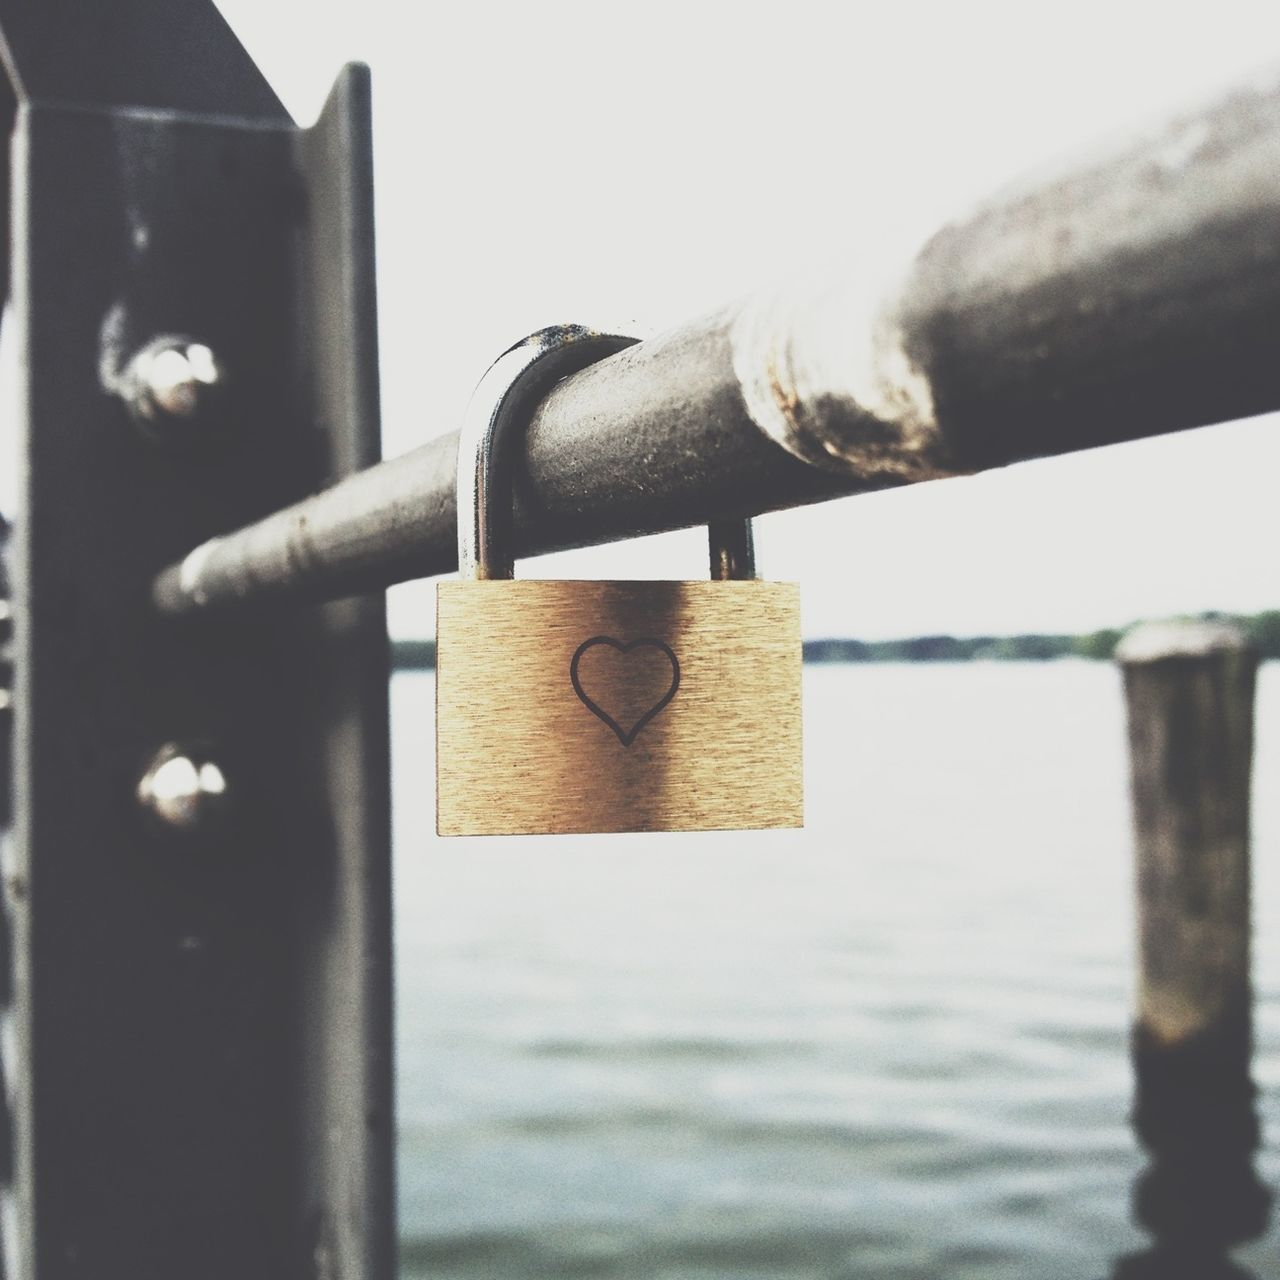 Close-up of a love padlock hanging on railing